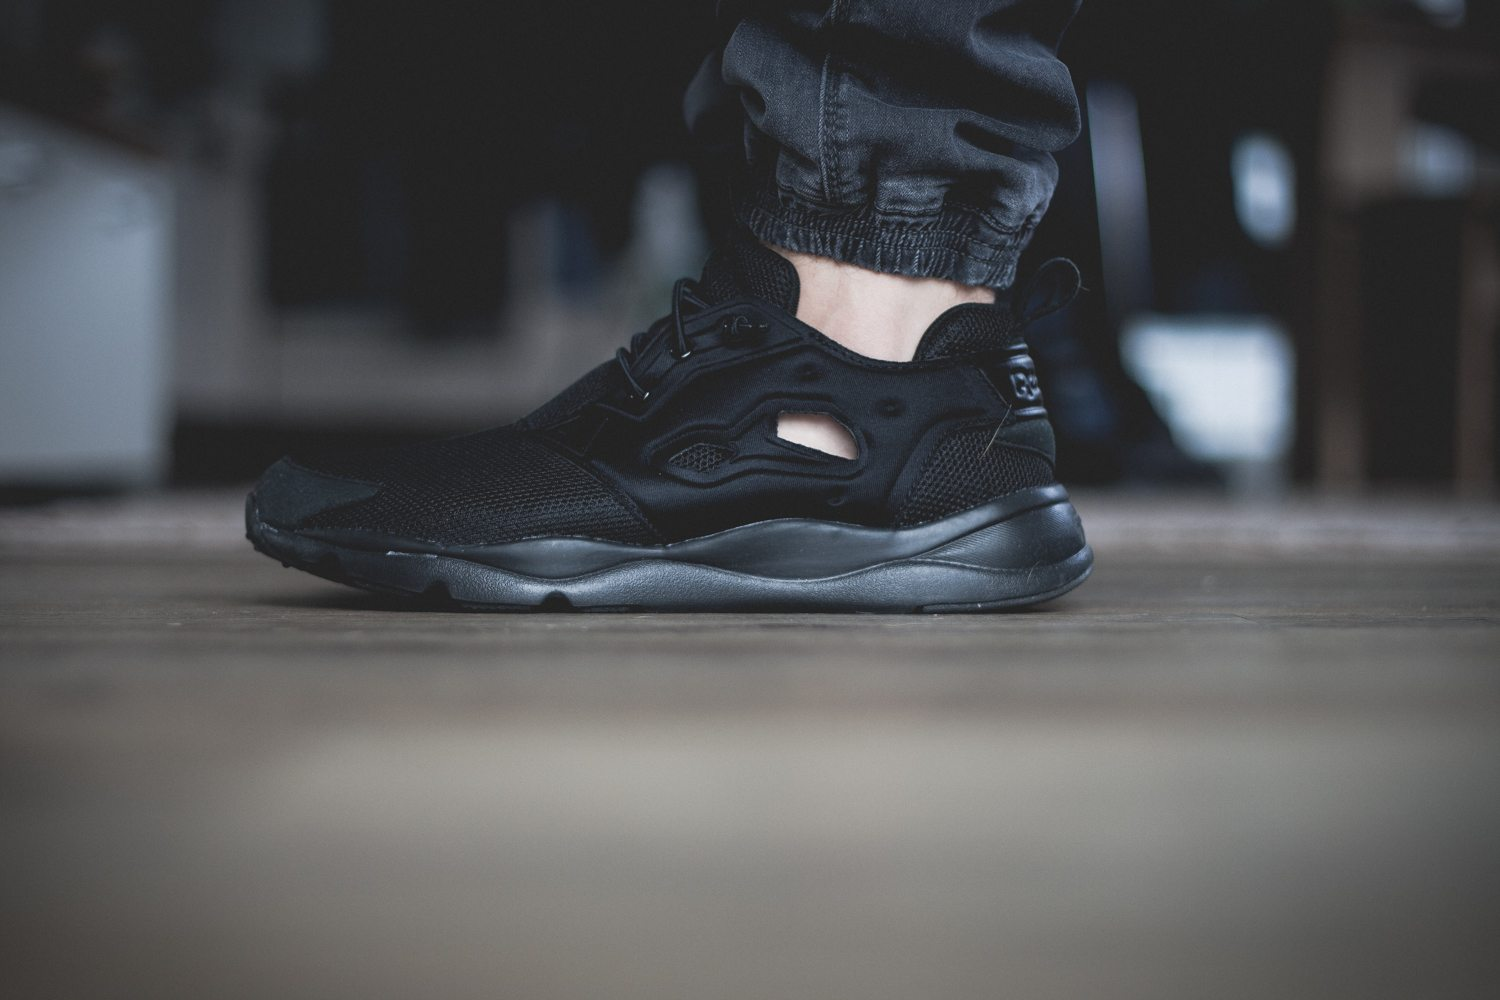 Reebok Classic Fury Lite All Black 7